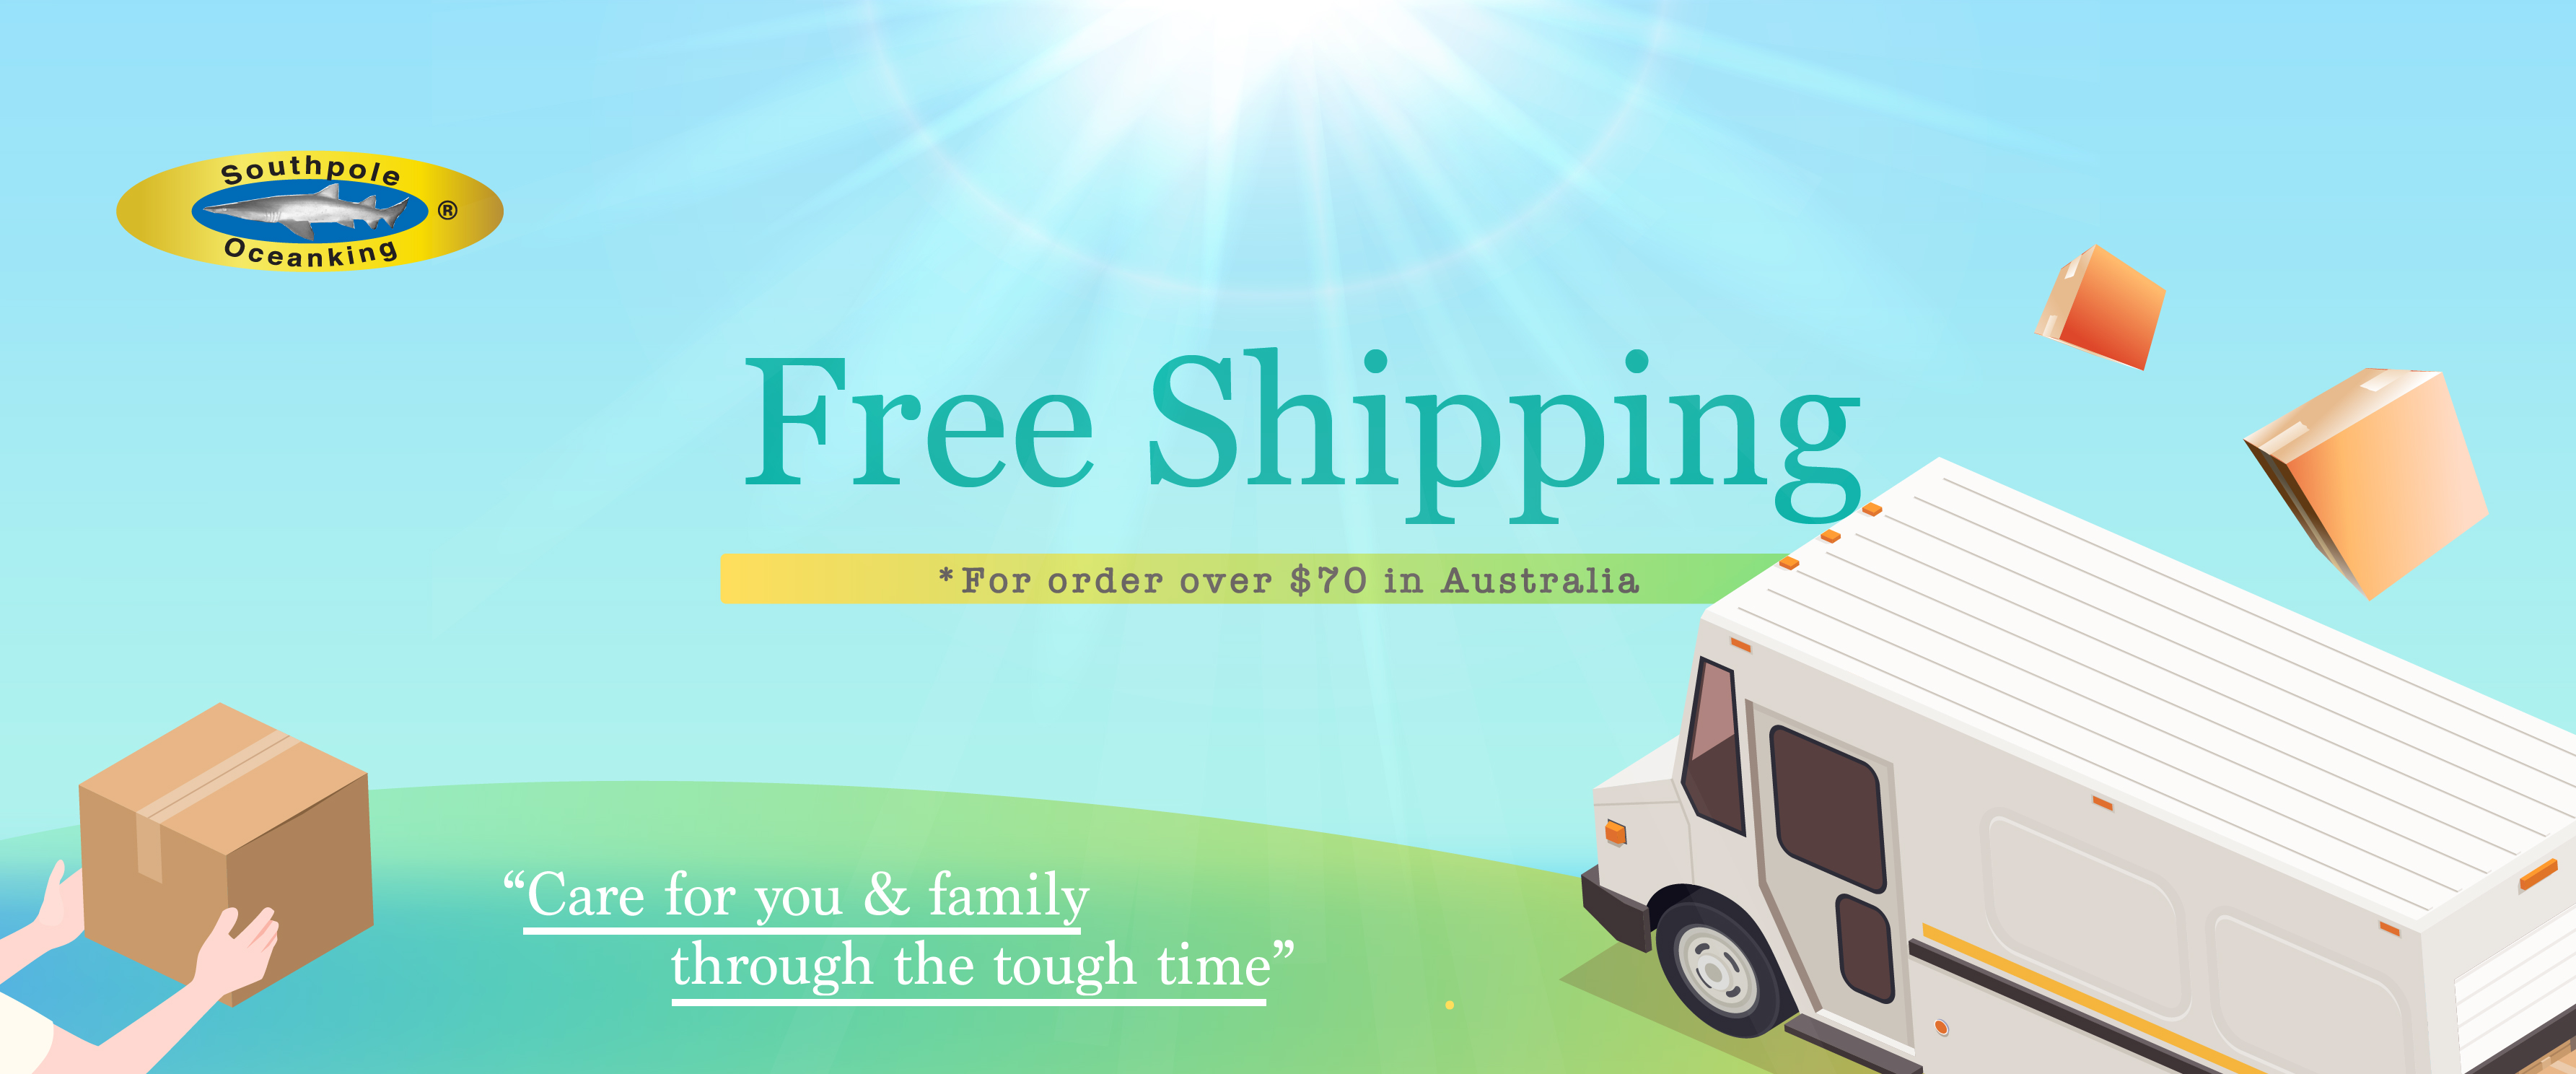 free-shipping-for-orders-over-aud-70-in-australia-english-banner